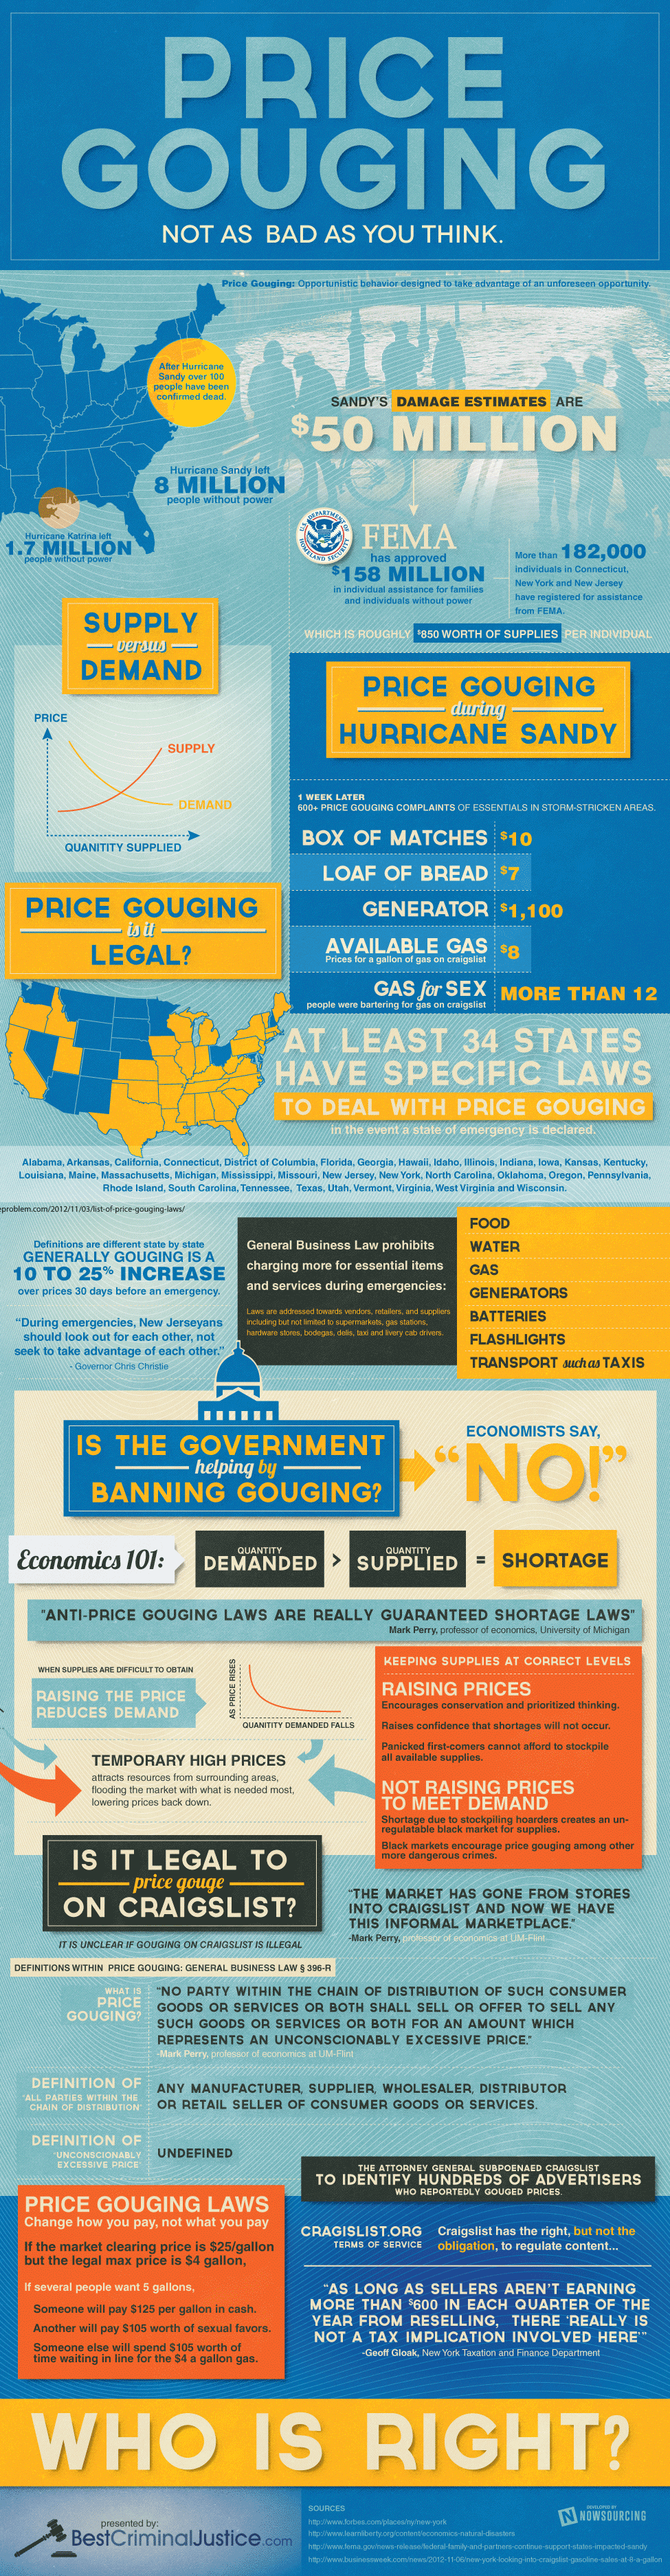 Price Gouging – Not as bad as you think. [Infographic]